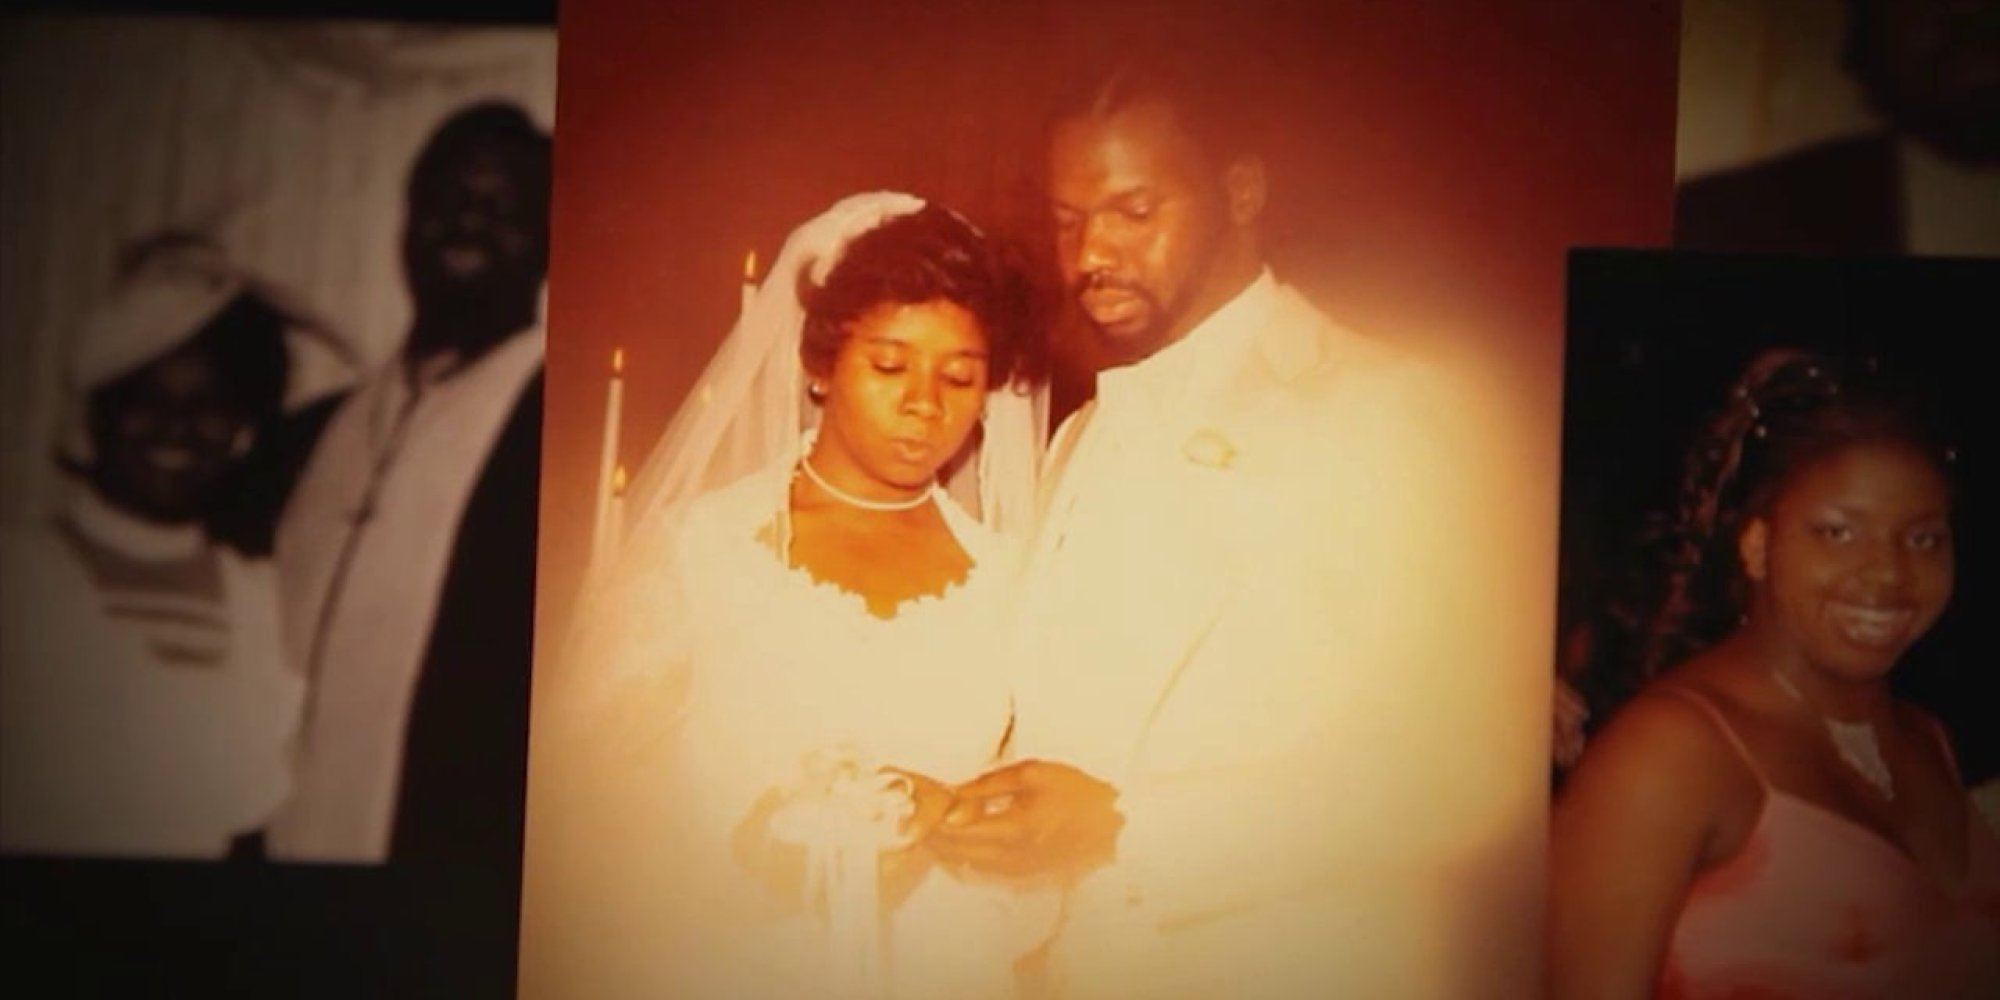 Td Jakes Quotes On Family: How A Devastating Car Accident Brought T.D. Jakes And His